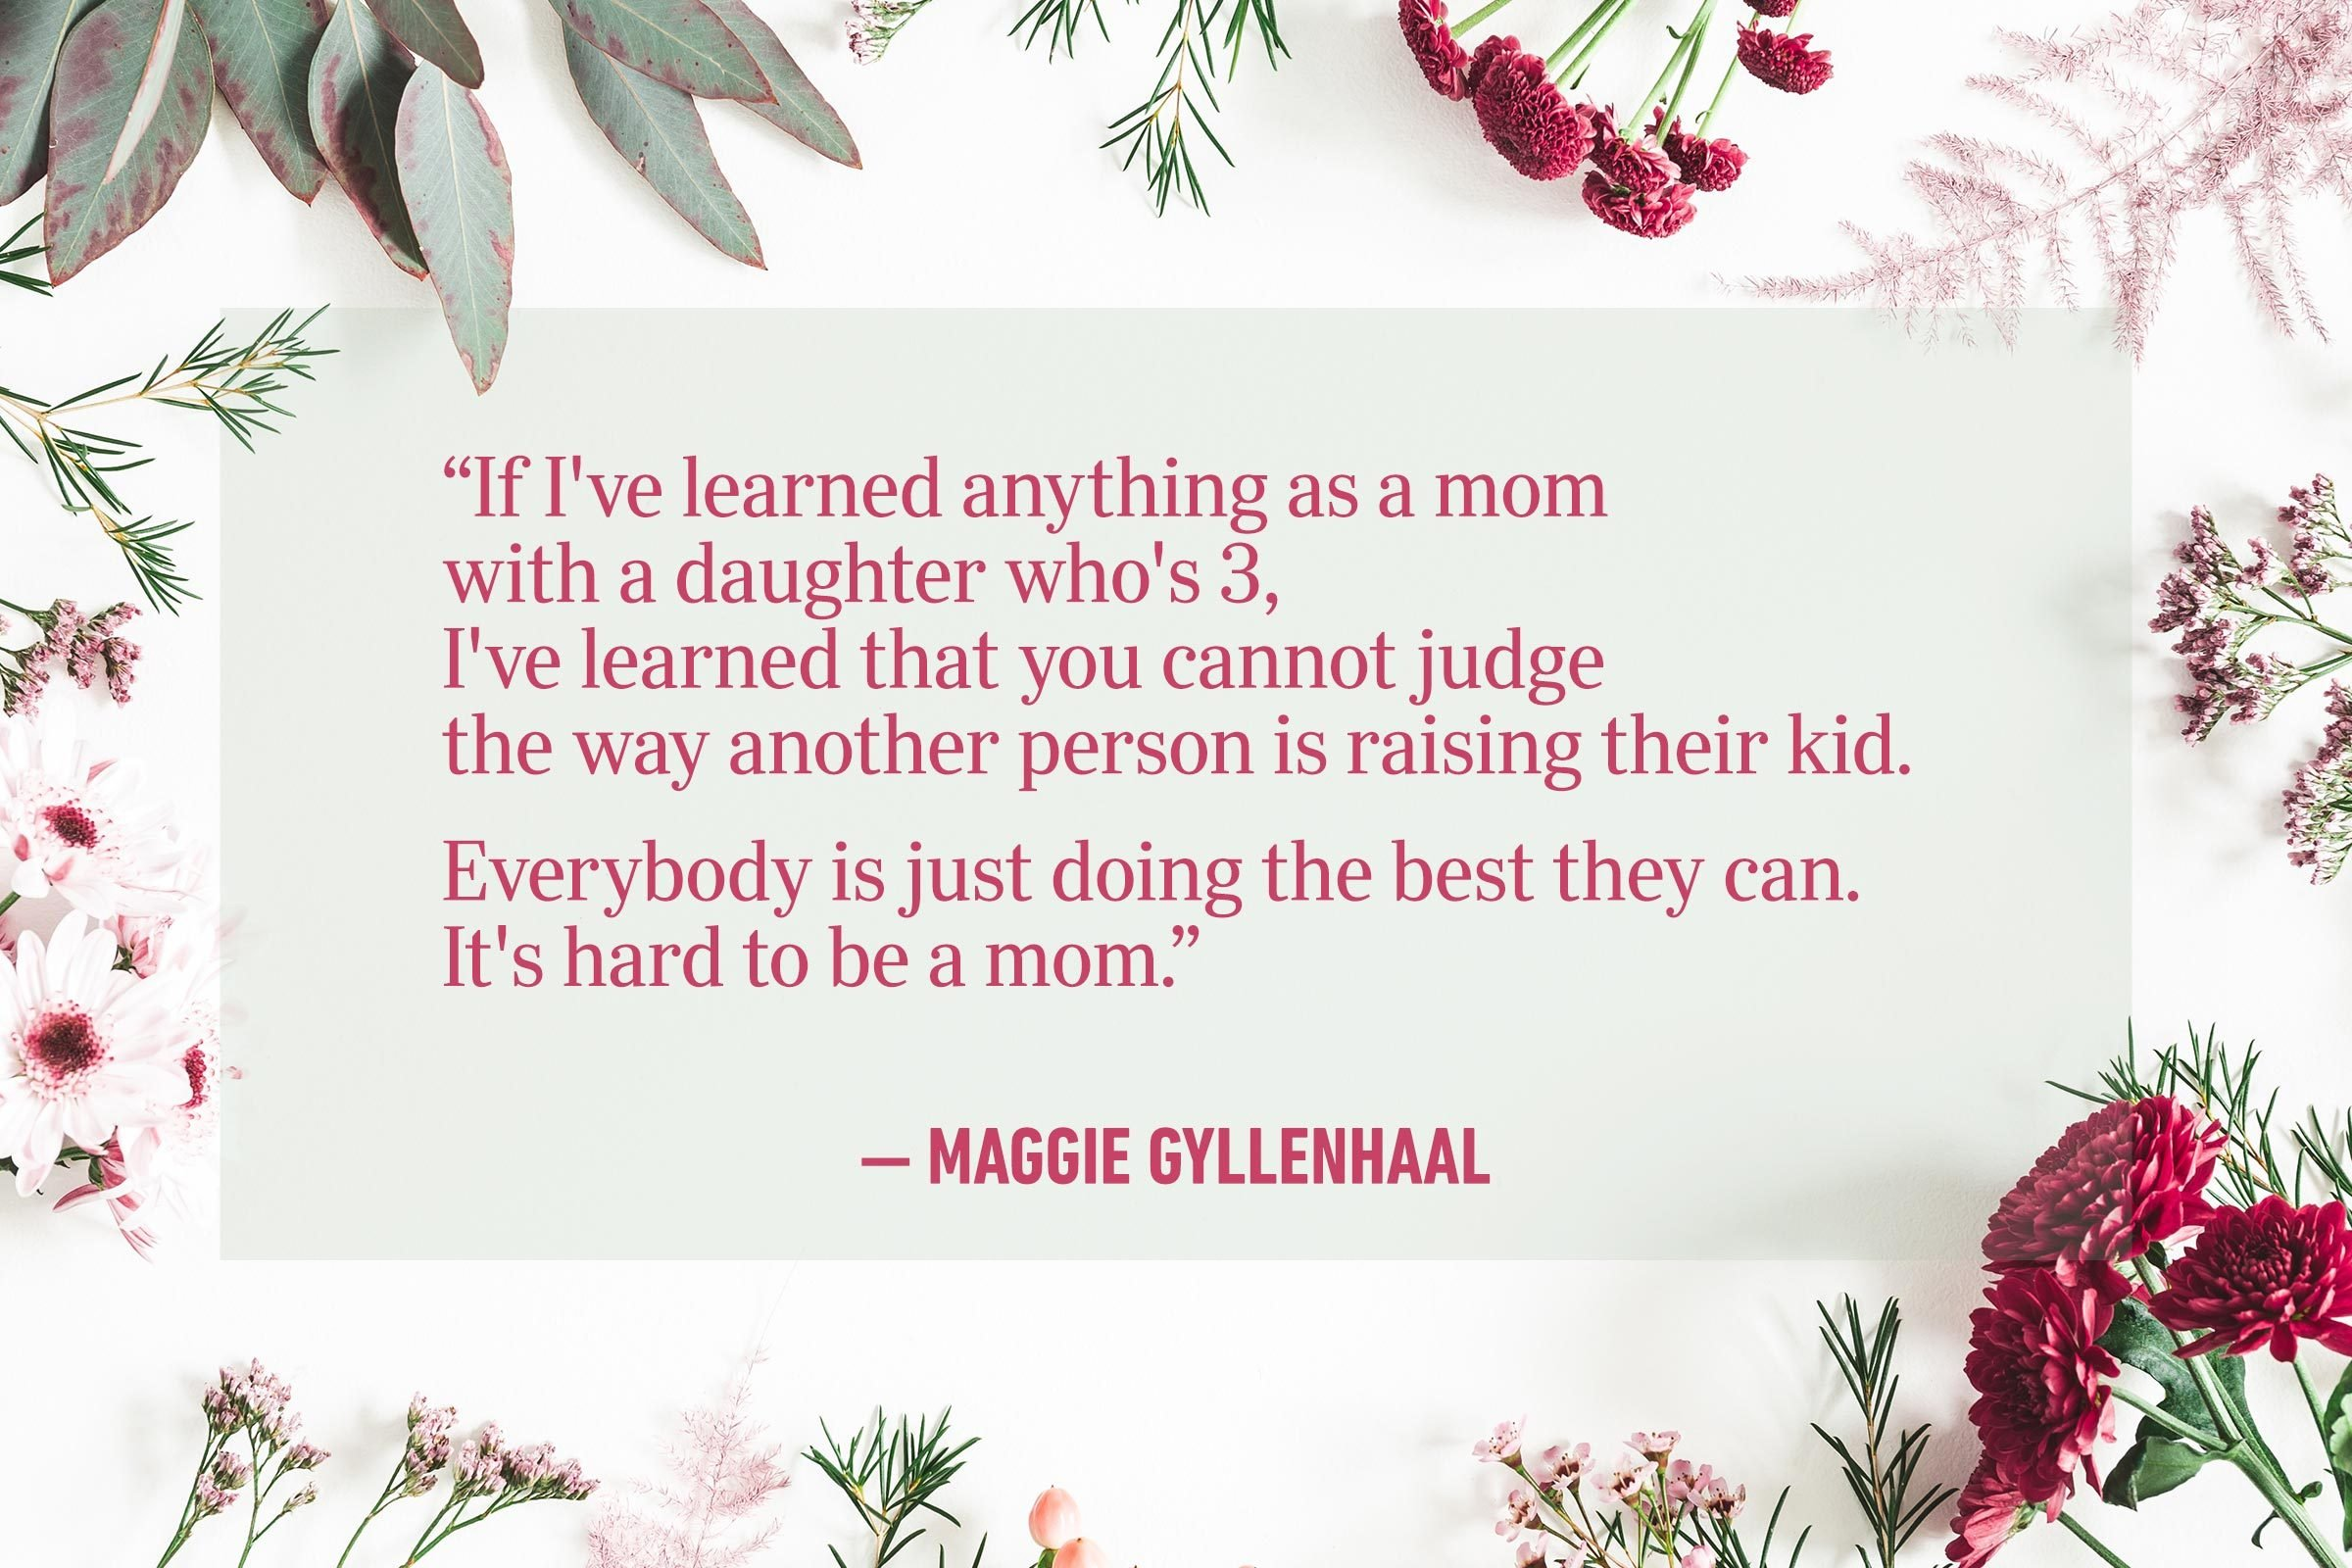 """""""If I've learned anything as a mom with a daughter who's 3, I've learned that you cannot judge the way another person is raising their kid. Everybody is just doing the best they can. It's hard to be a mom."""" —Maggie Gyllenhaal"""